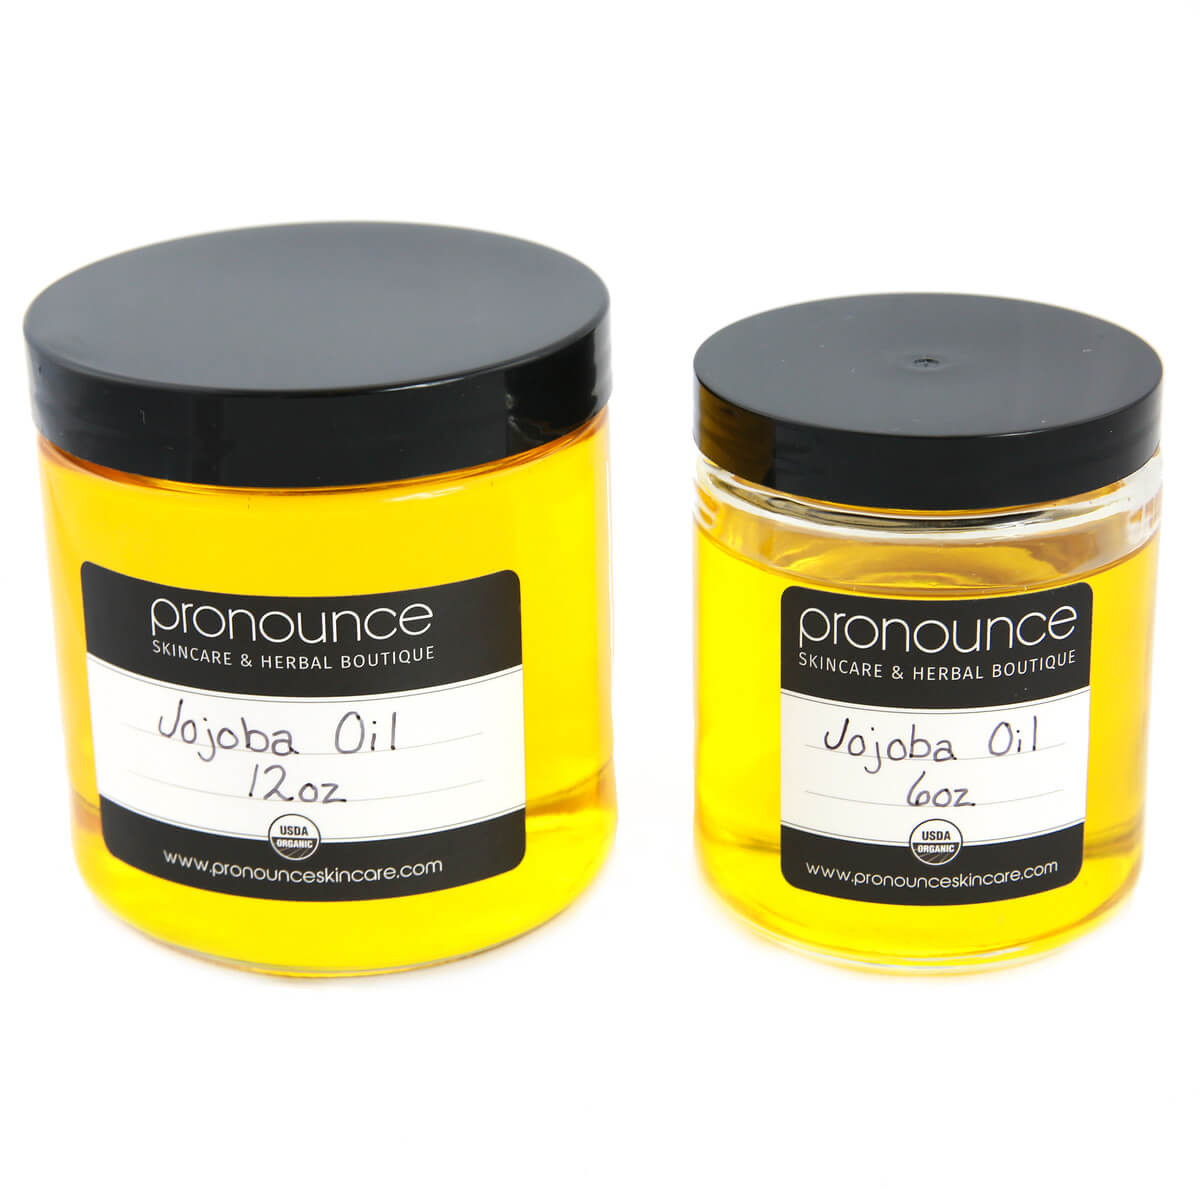 Certified Organic Jojoba Oil 2 Sizes Pronounce Skincare & Herbal Boutique